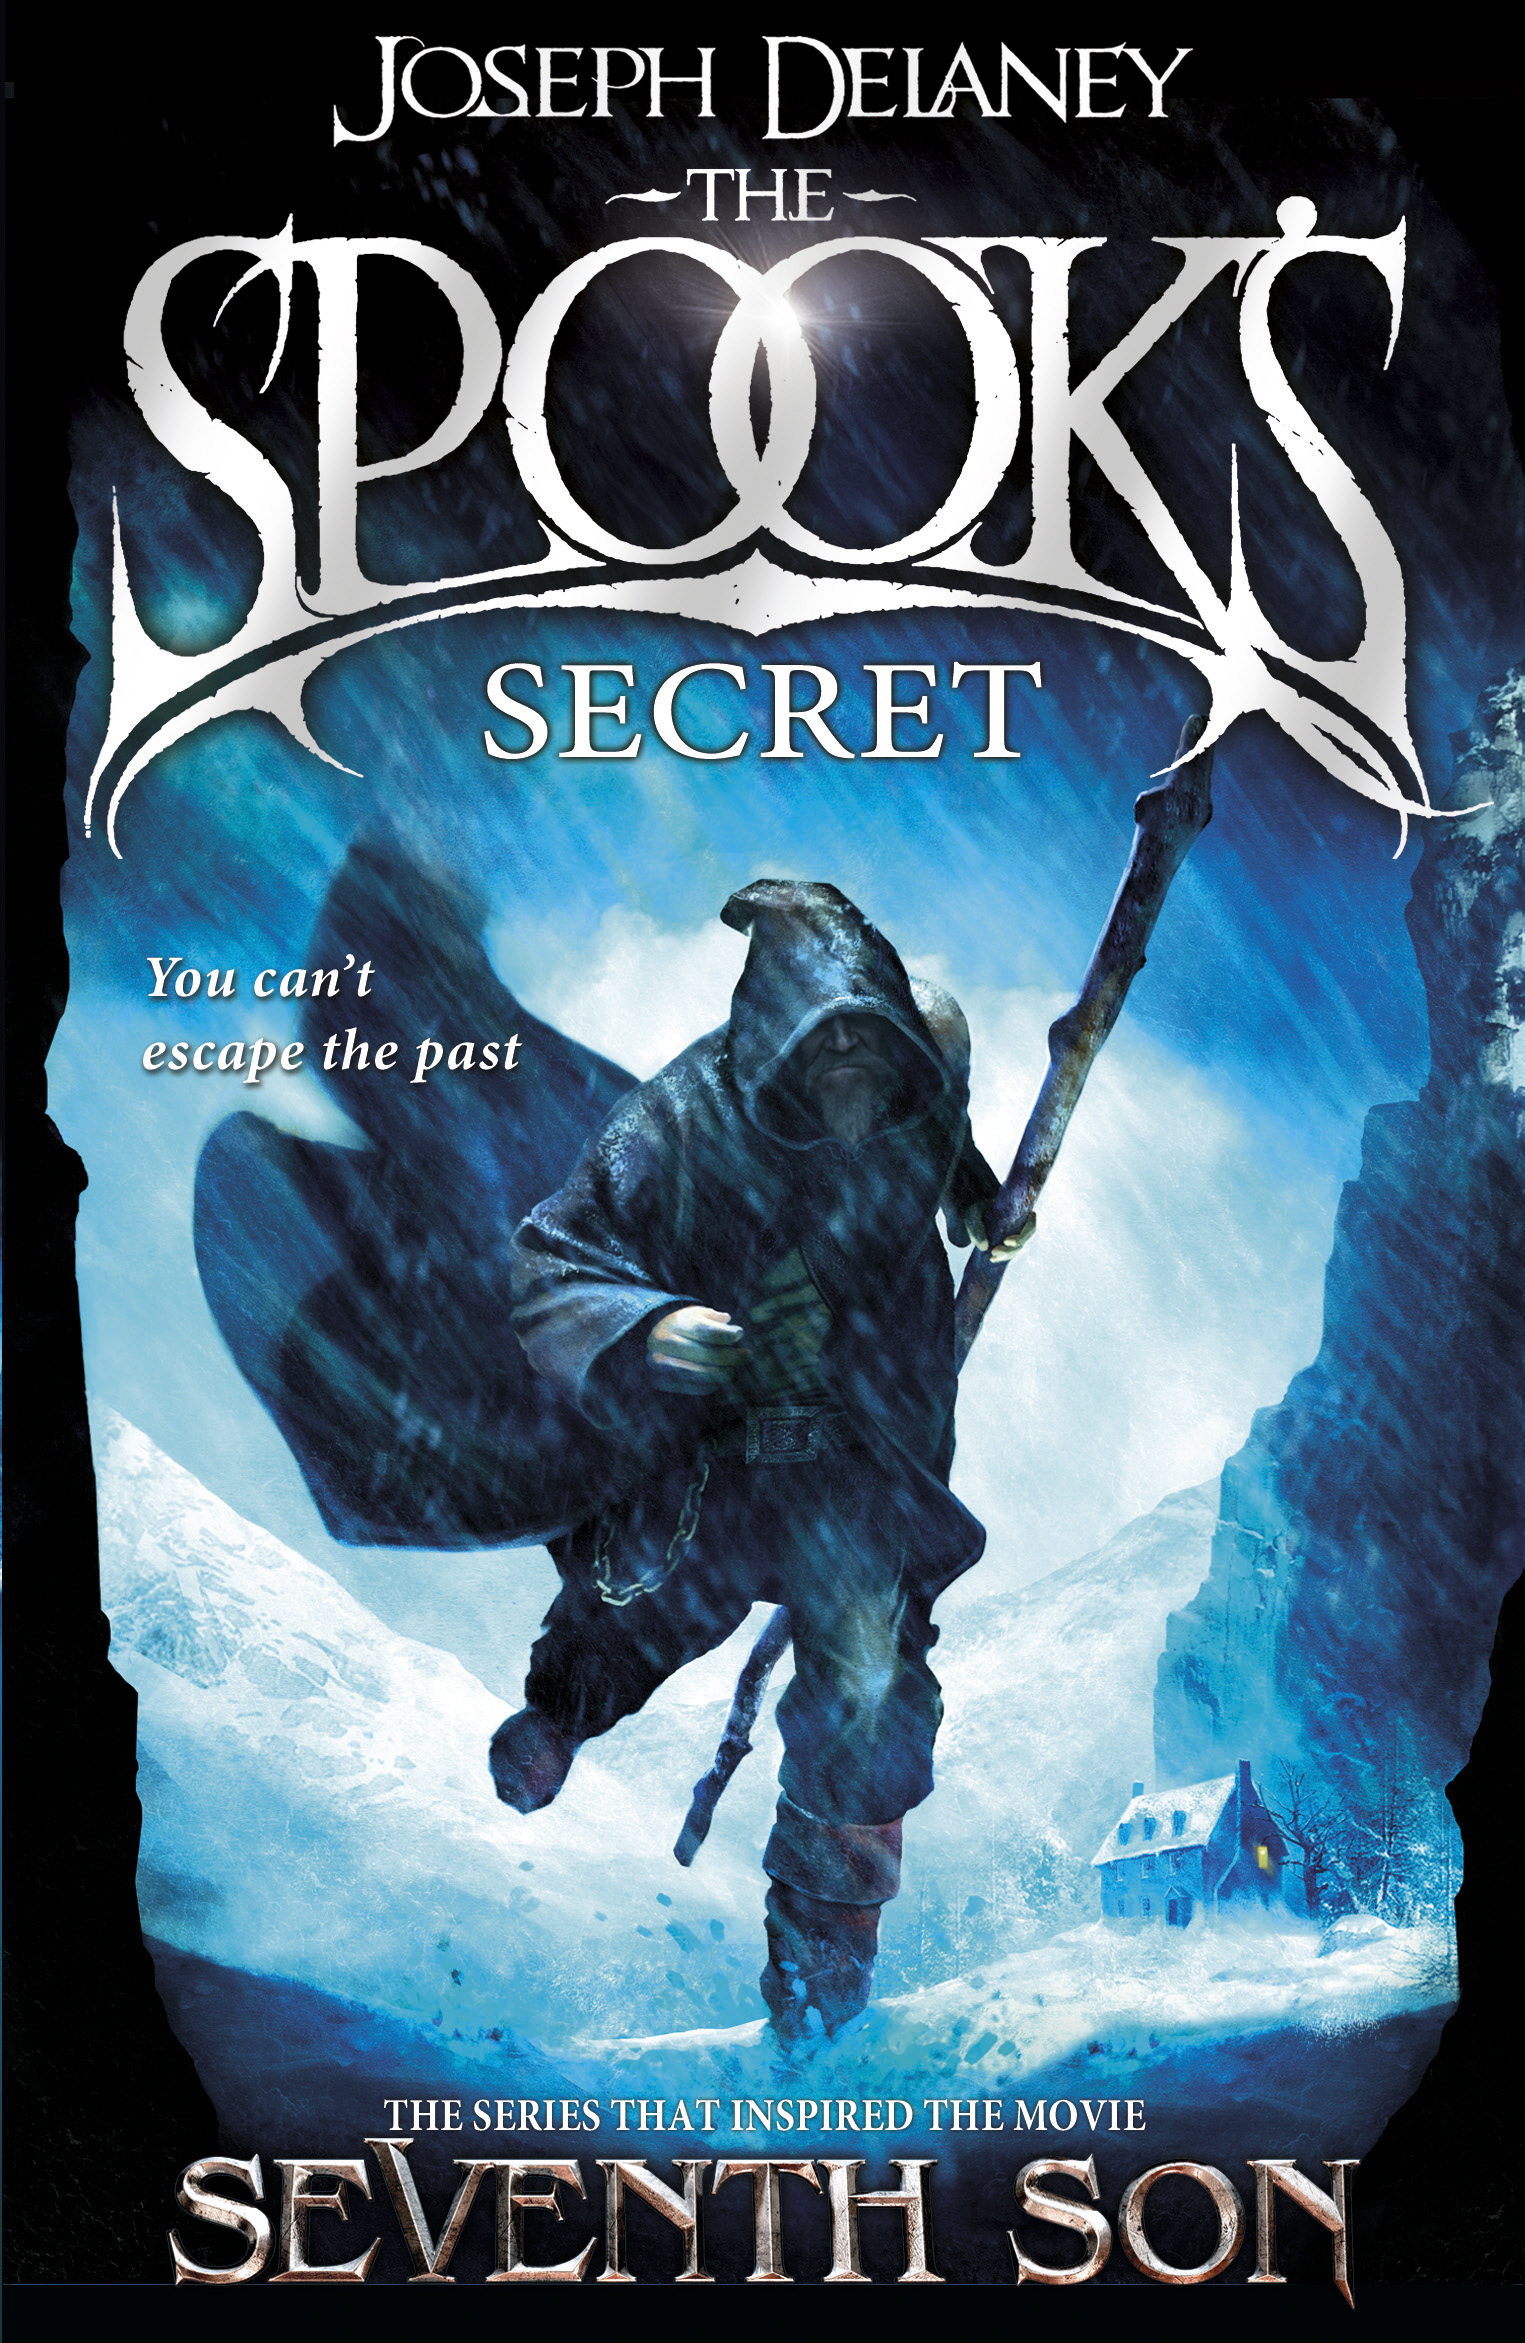 The Spook's Secret Book 3